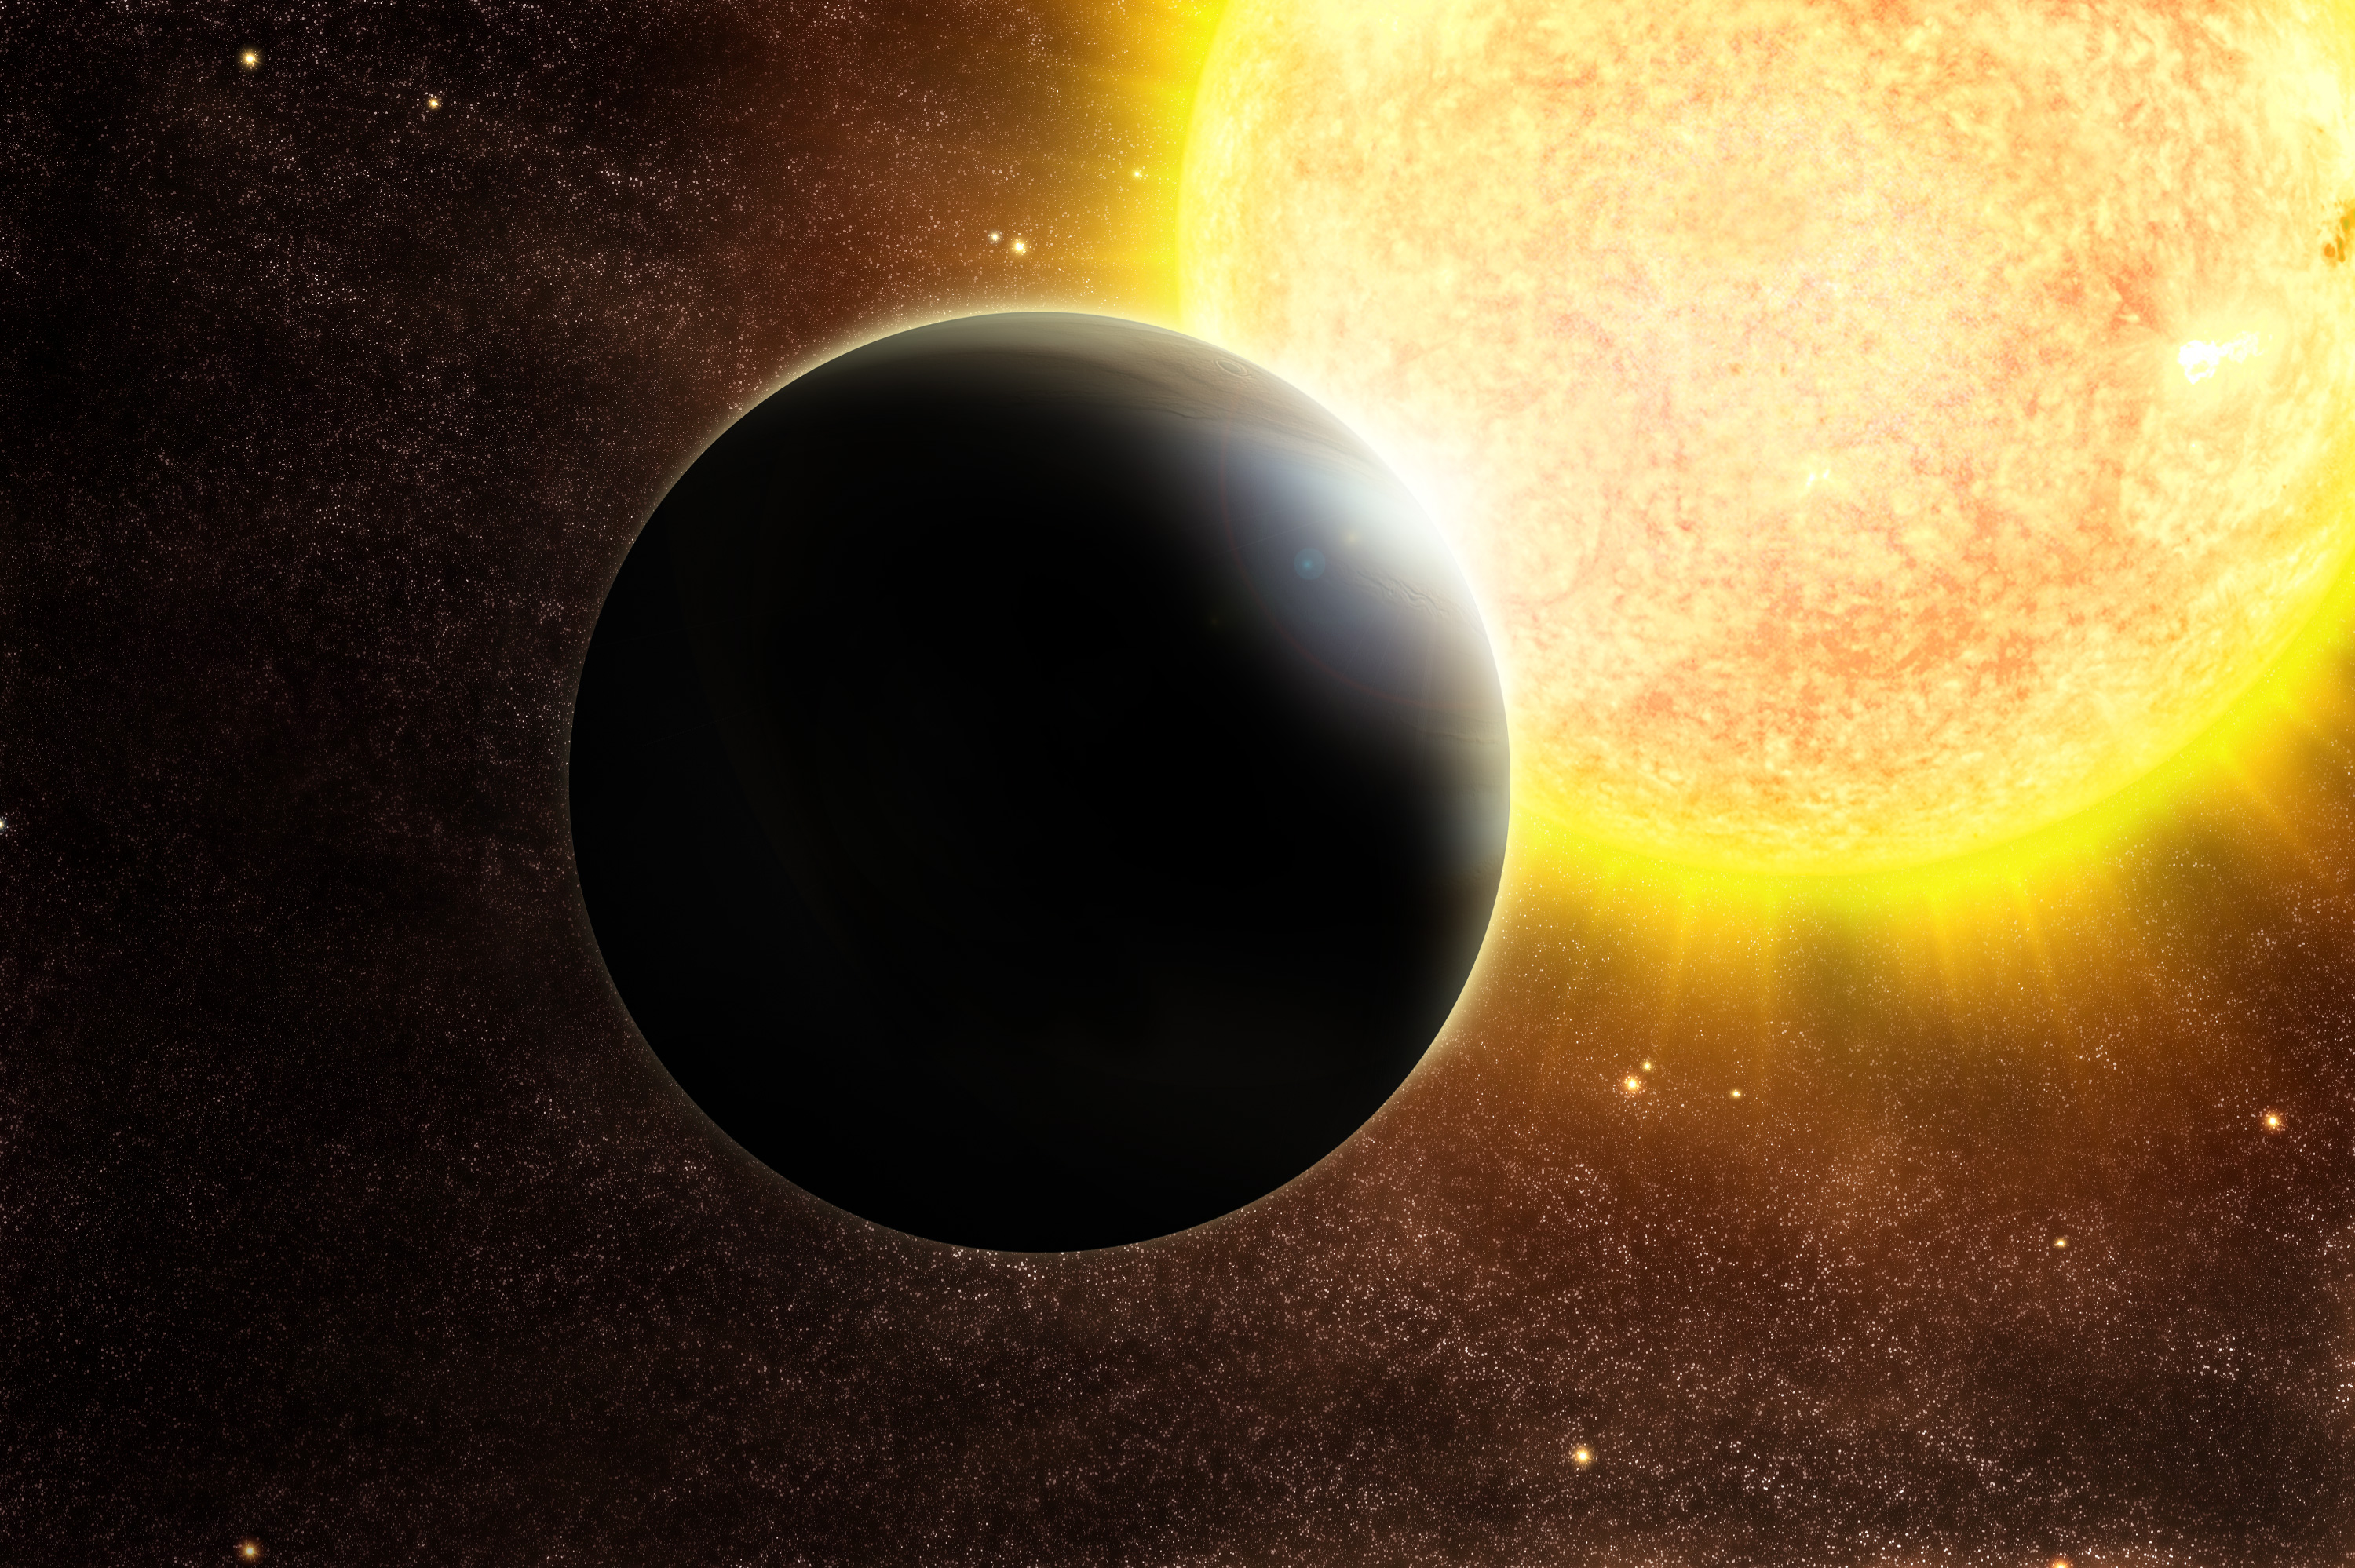 NASA Found A Solar System With Many Earth-Like Planets ...